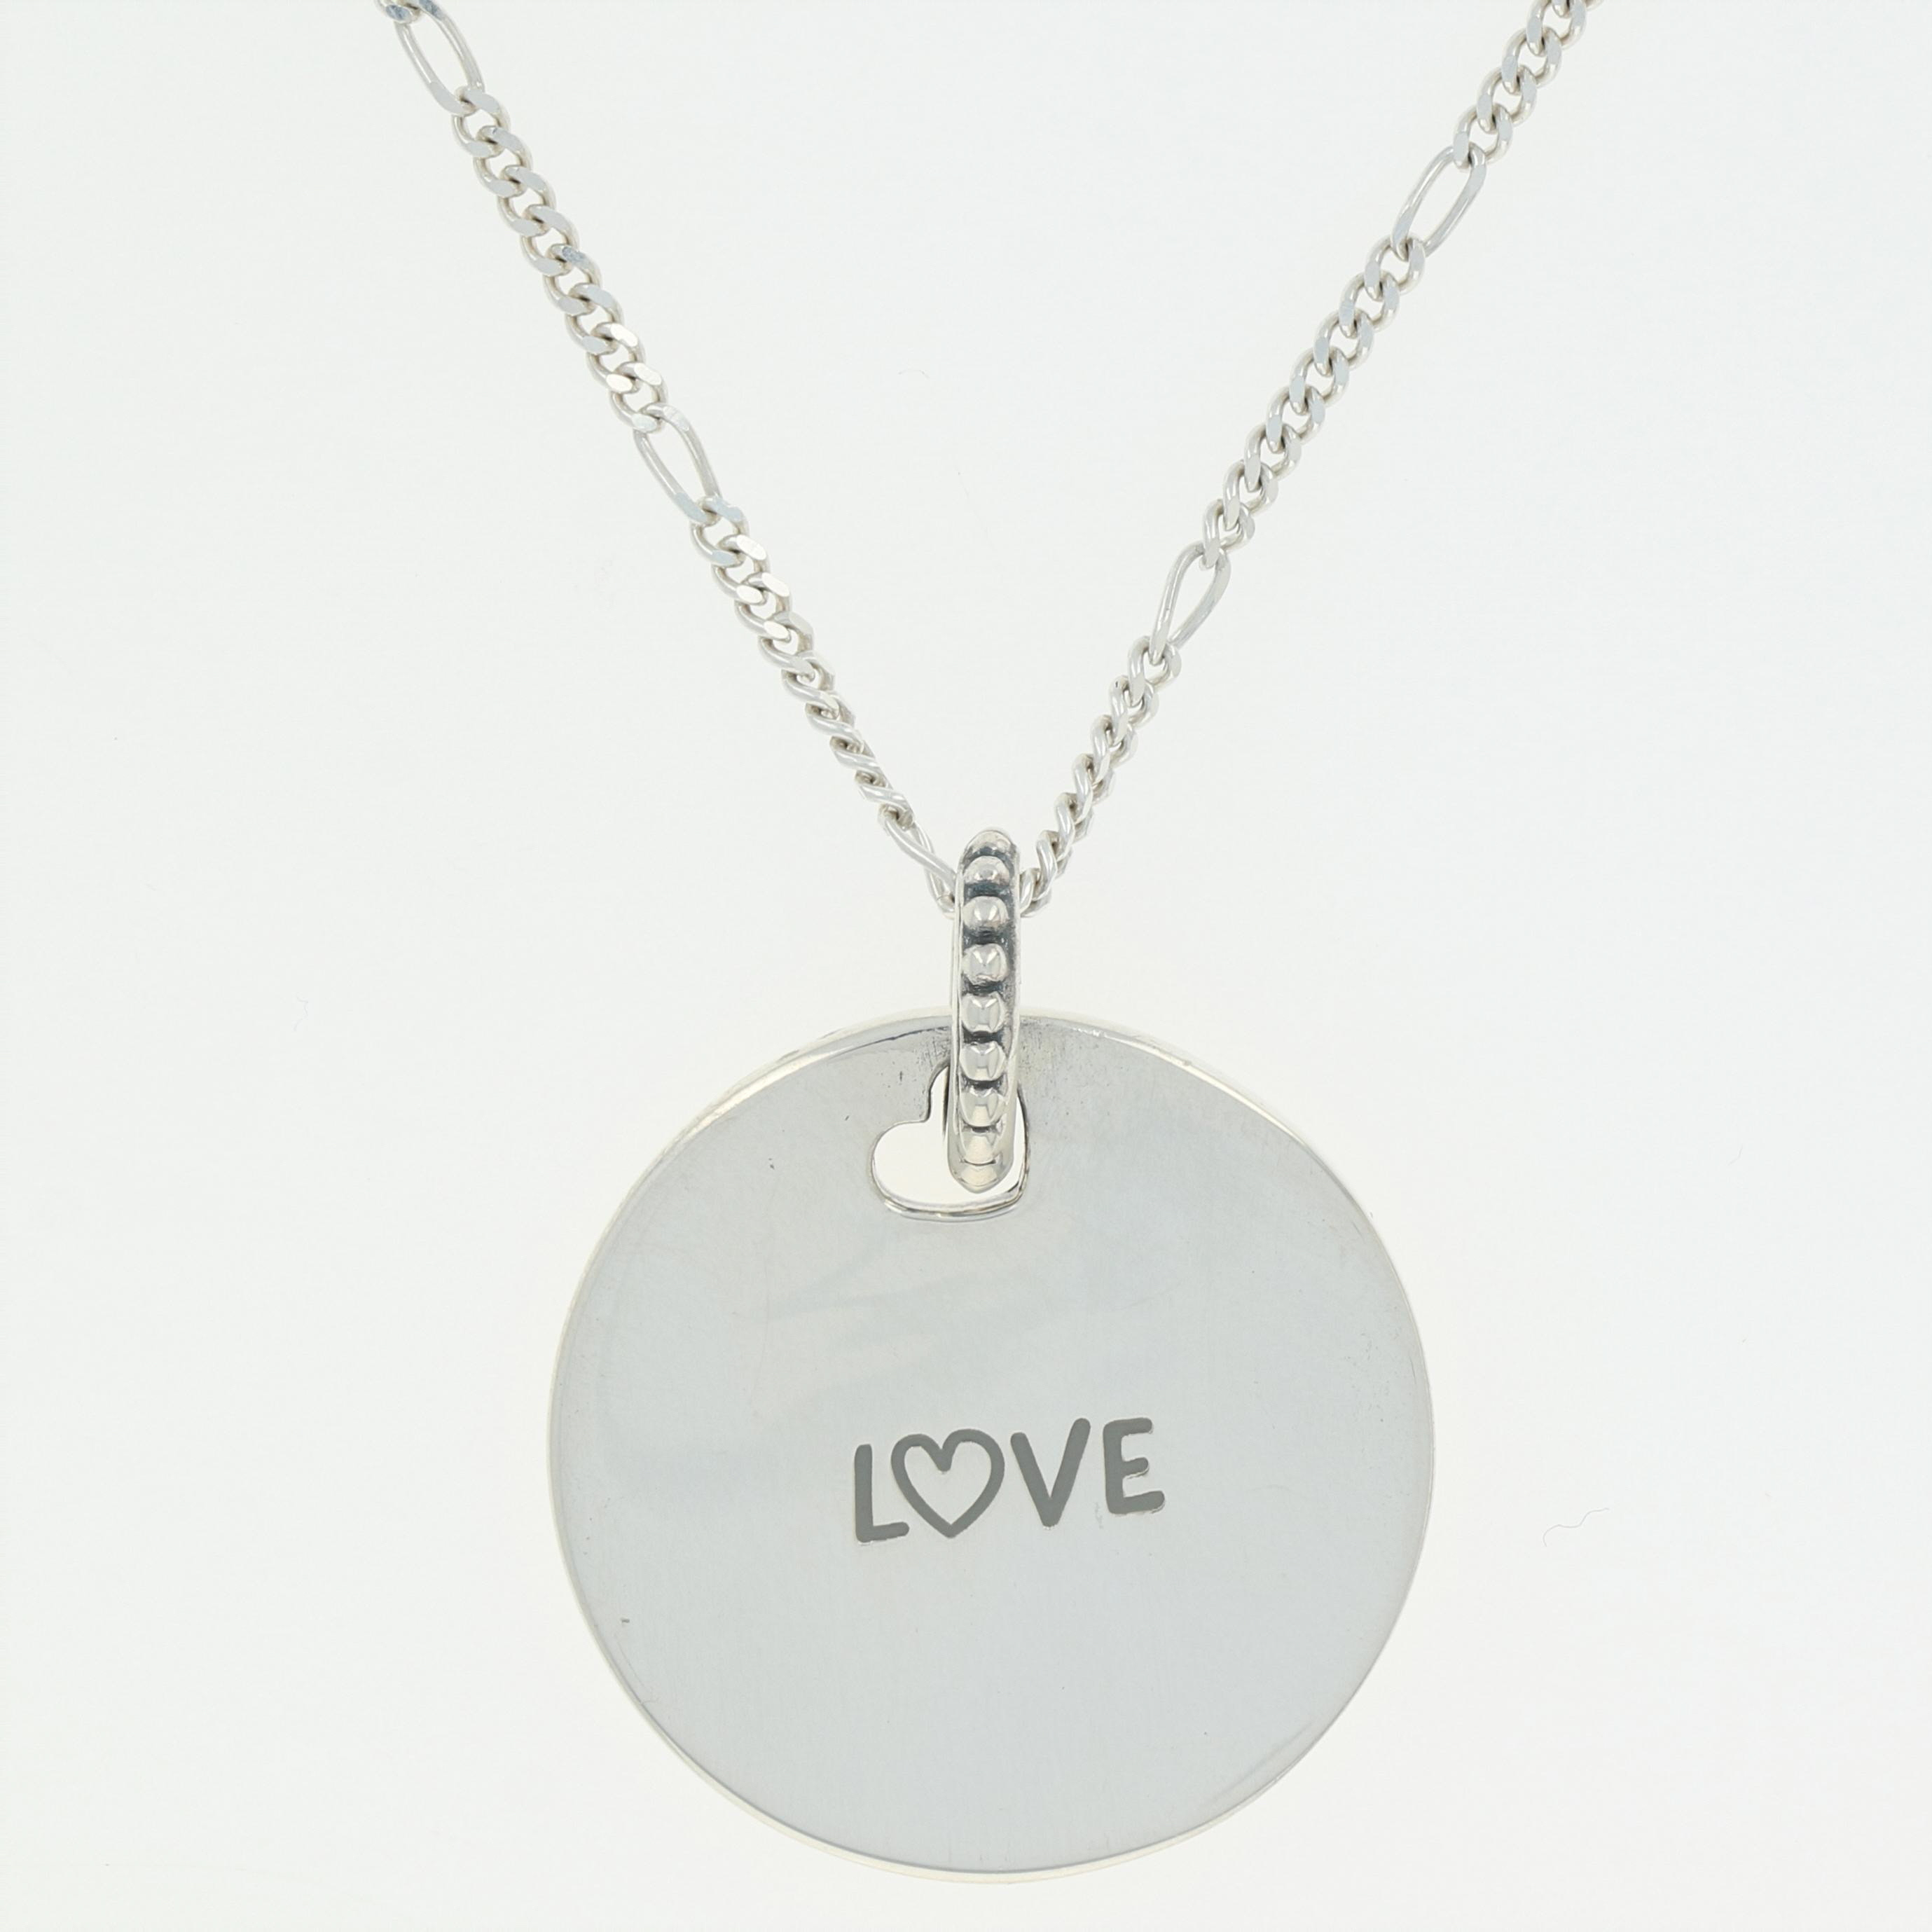 Details About New Authentic Pandora Love Disc Necklace  (View 4 of 25)